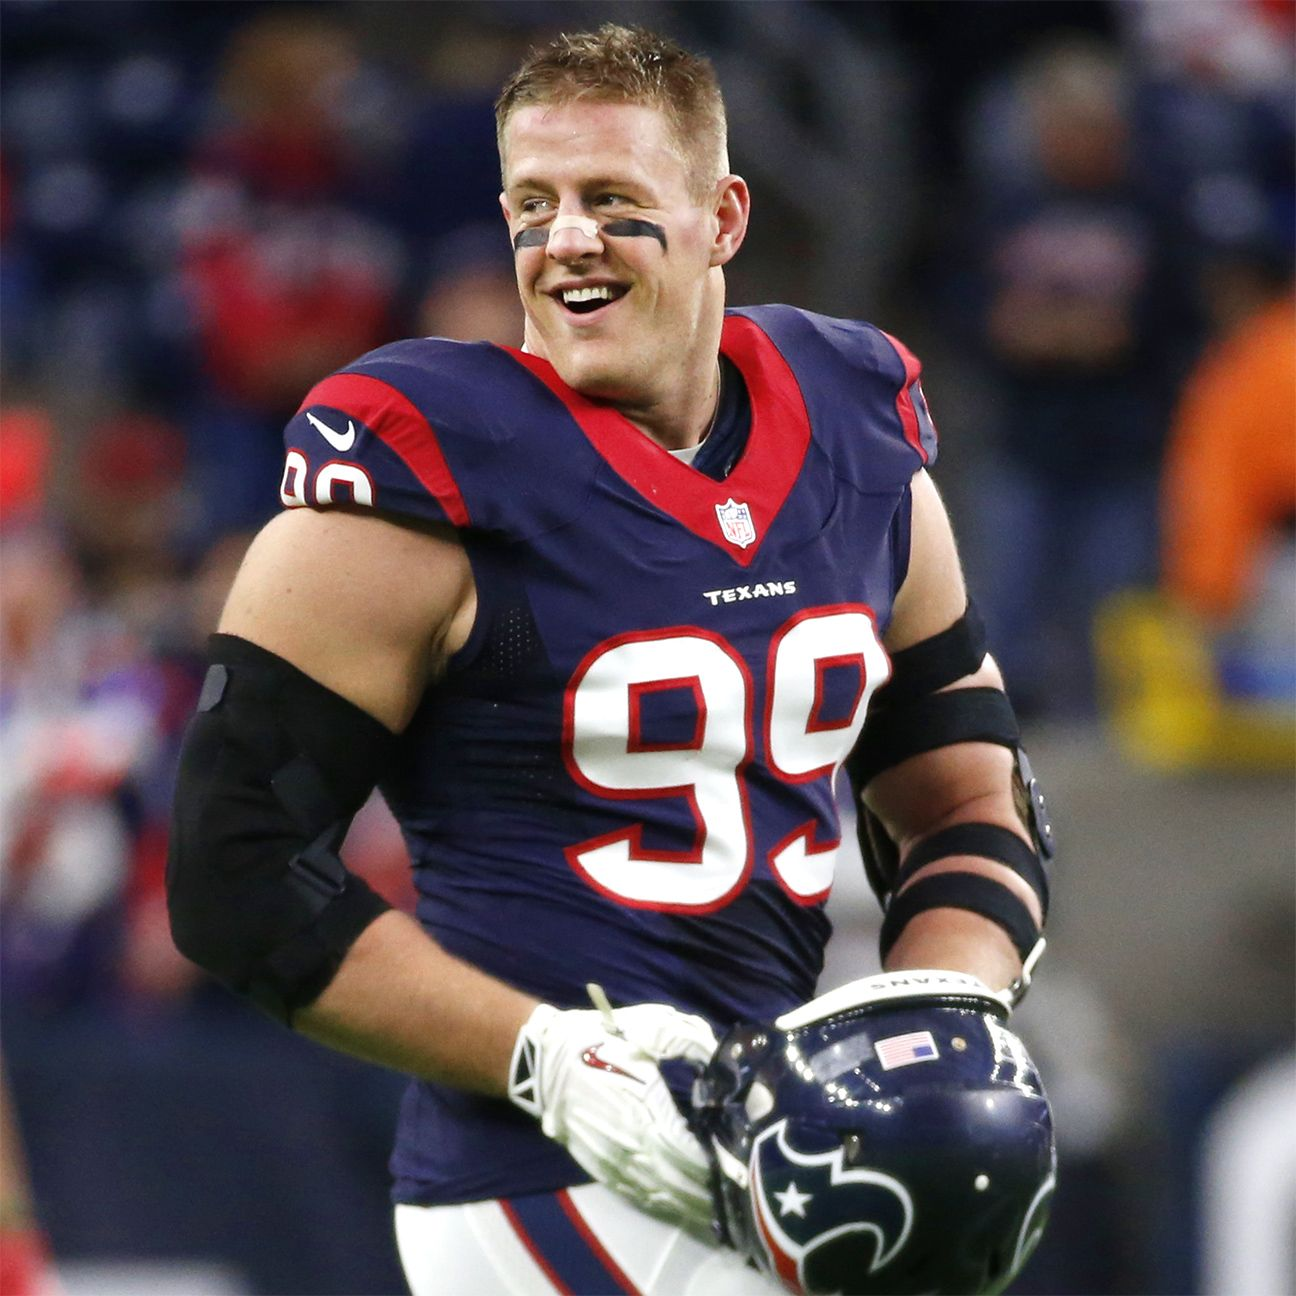 Houston Texans De J J Watt Signs Endorsement Deal With Reebok